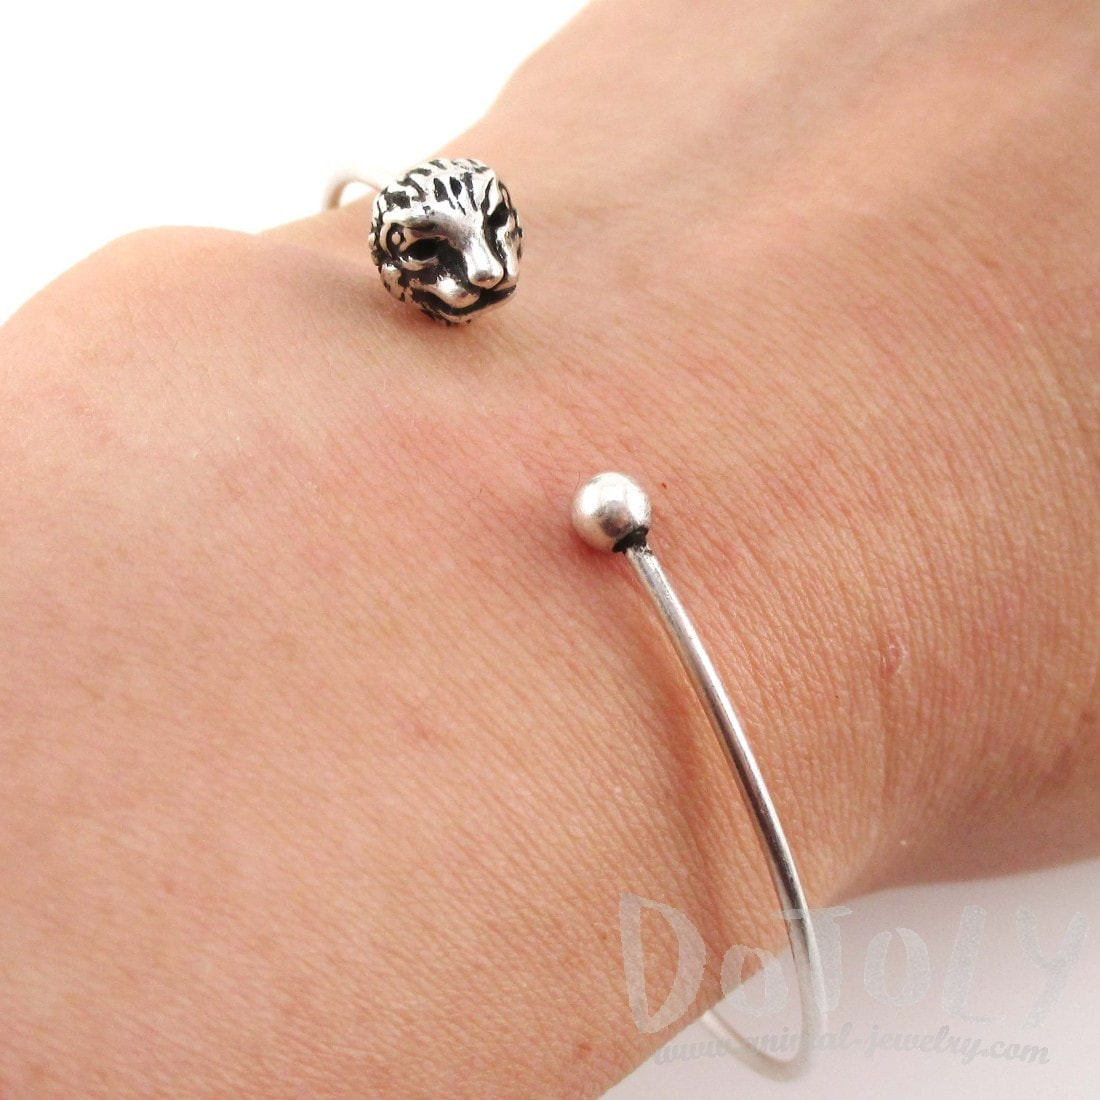 Minimal Bangle Bracelet Cuff with Lion Head Detail in Silver | DOTOLY